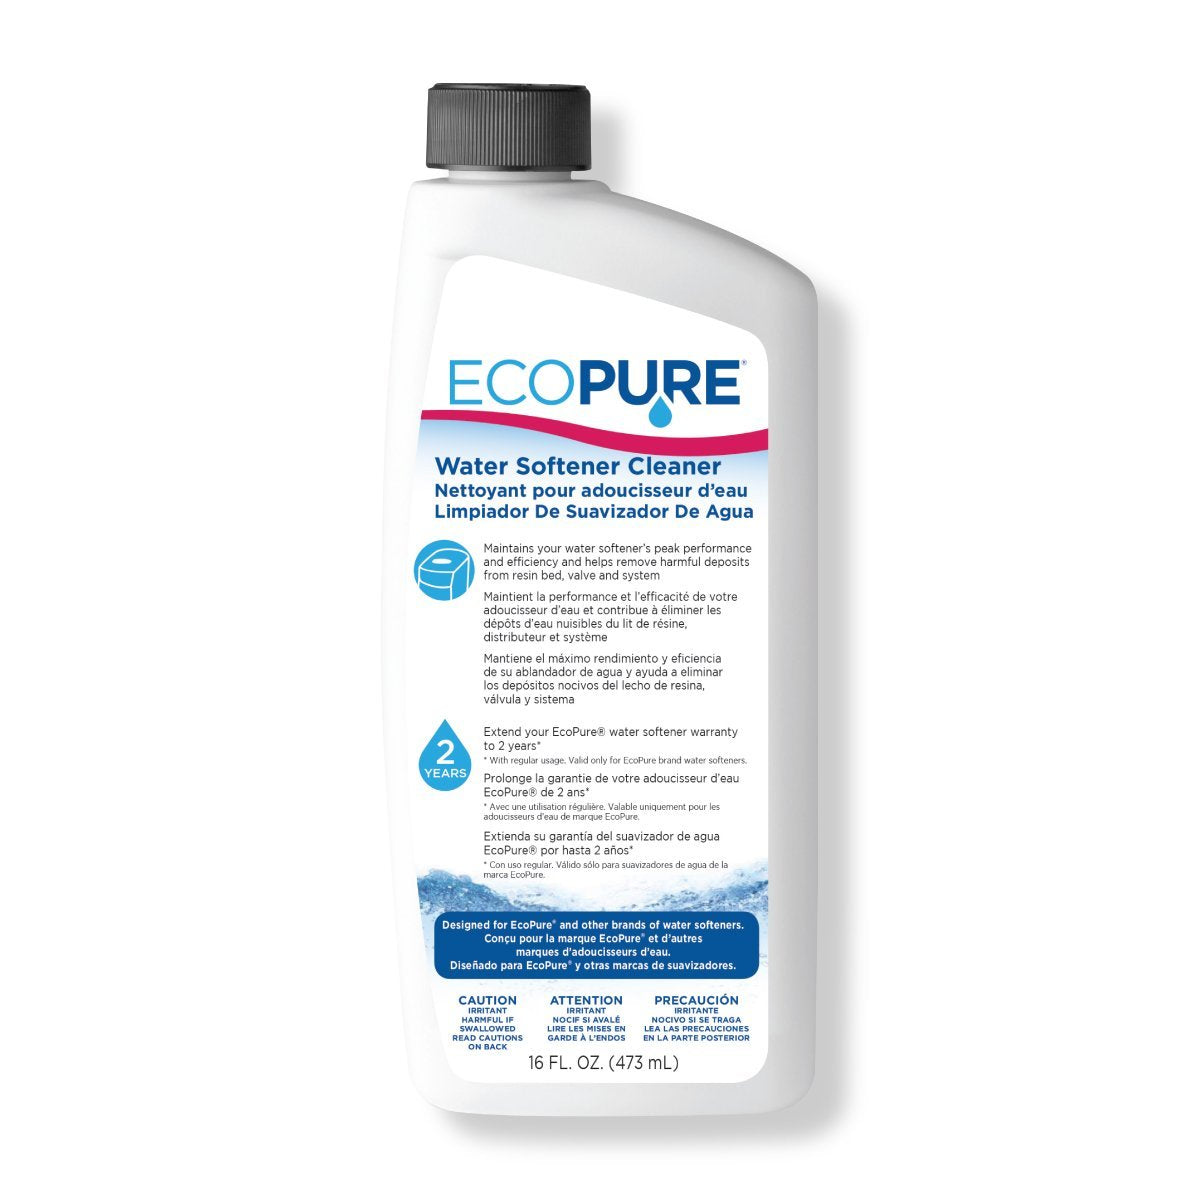 EcoPure 7346596 Water Softener Cleaner, 16 Oz